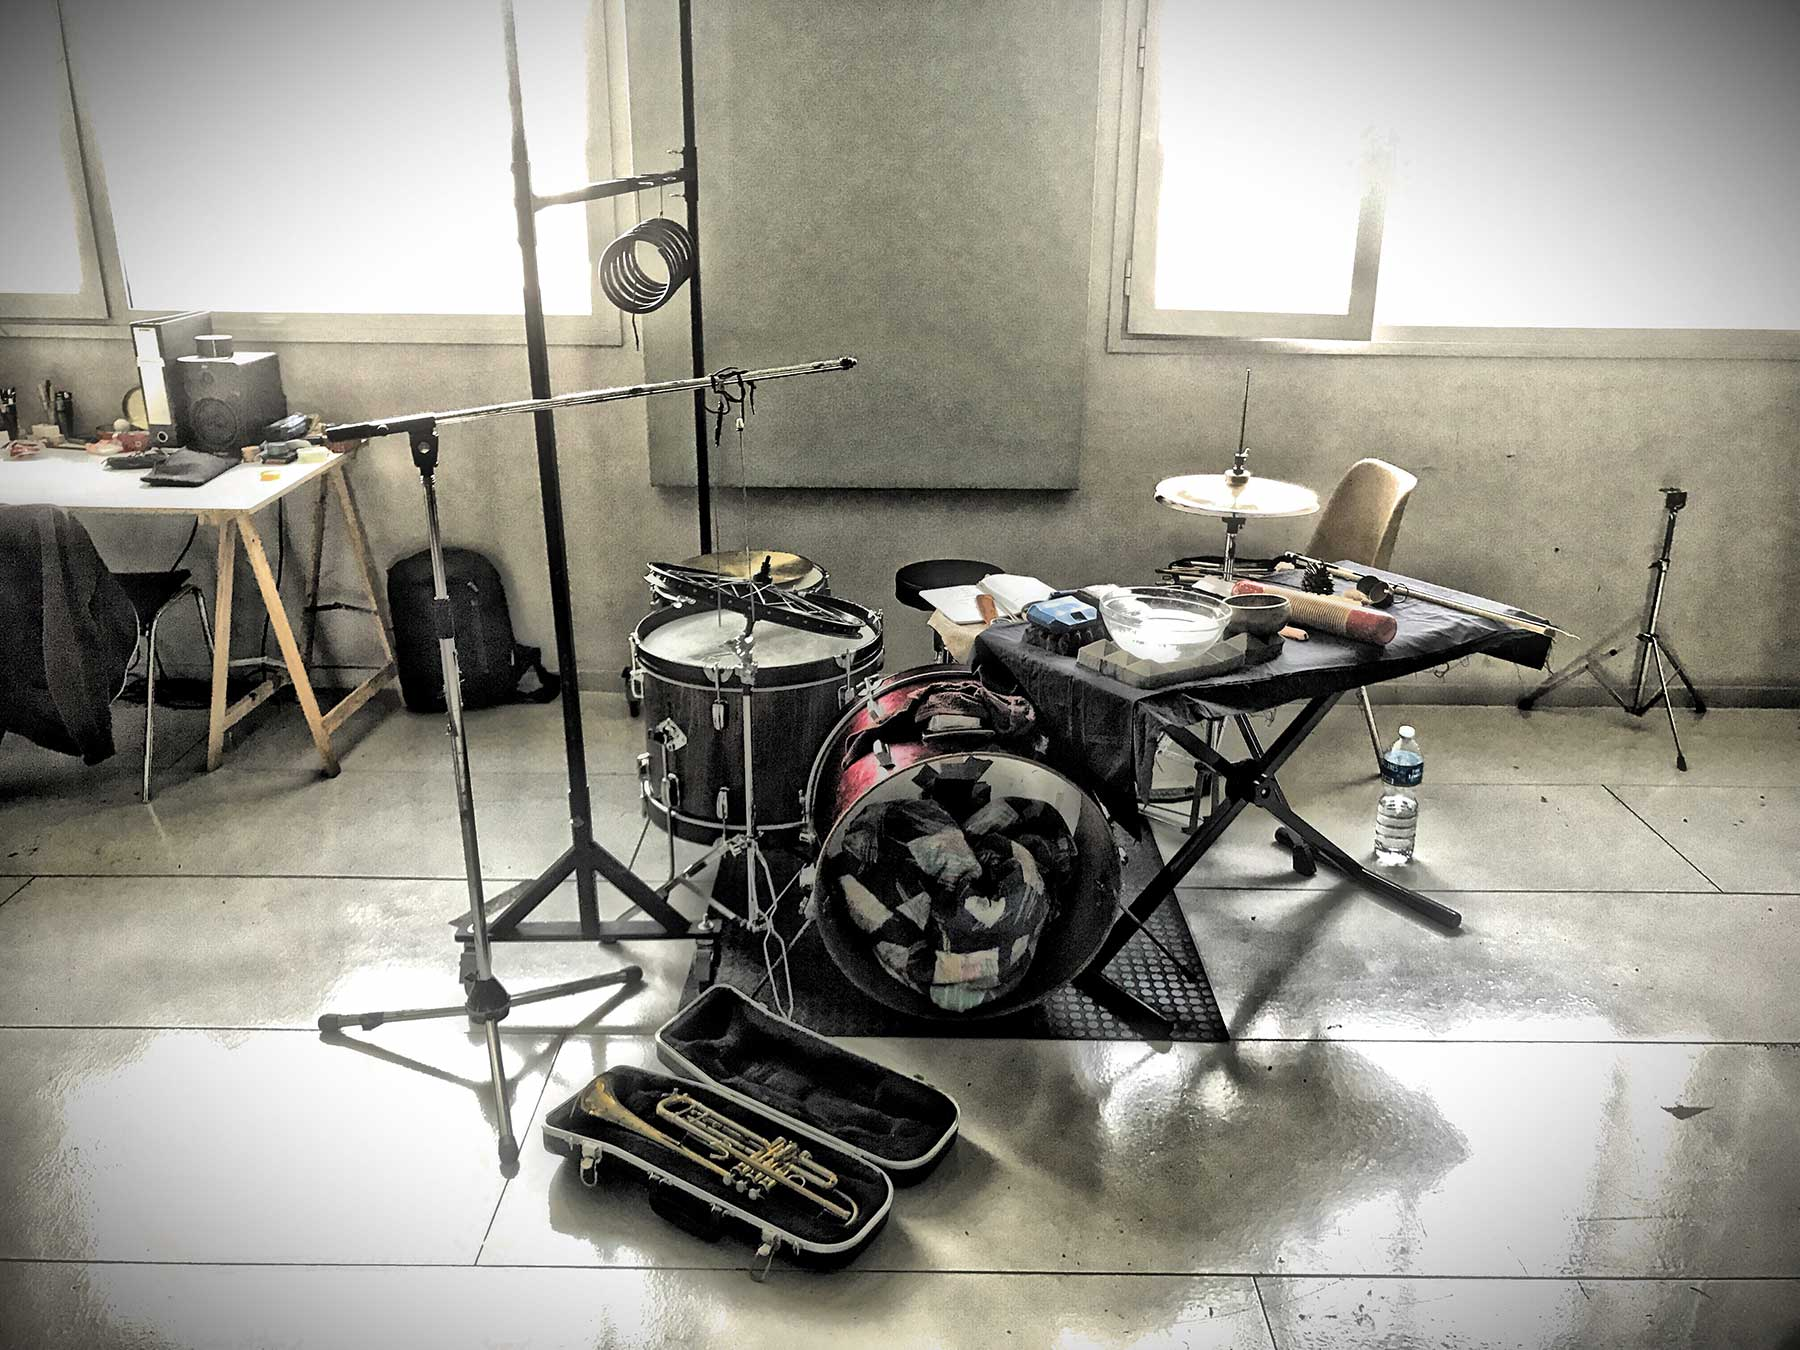 The Forgetting Machine (Jeff Kaiser and Luis Tabuenca) recording at Fabra i Coats, Barcelona, Spain